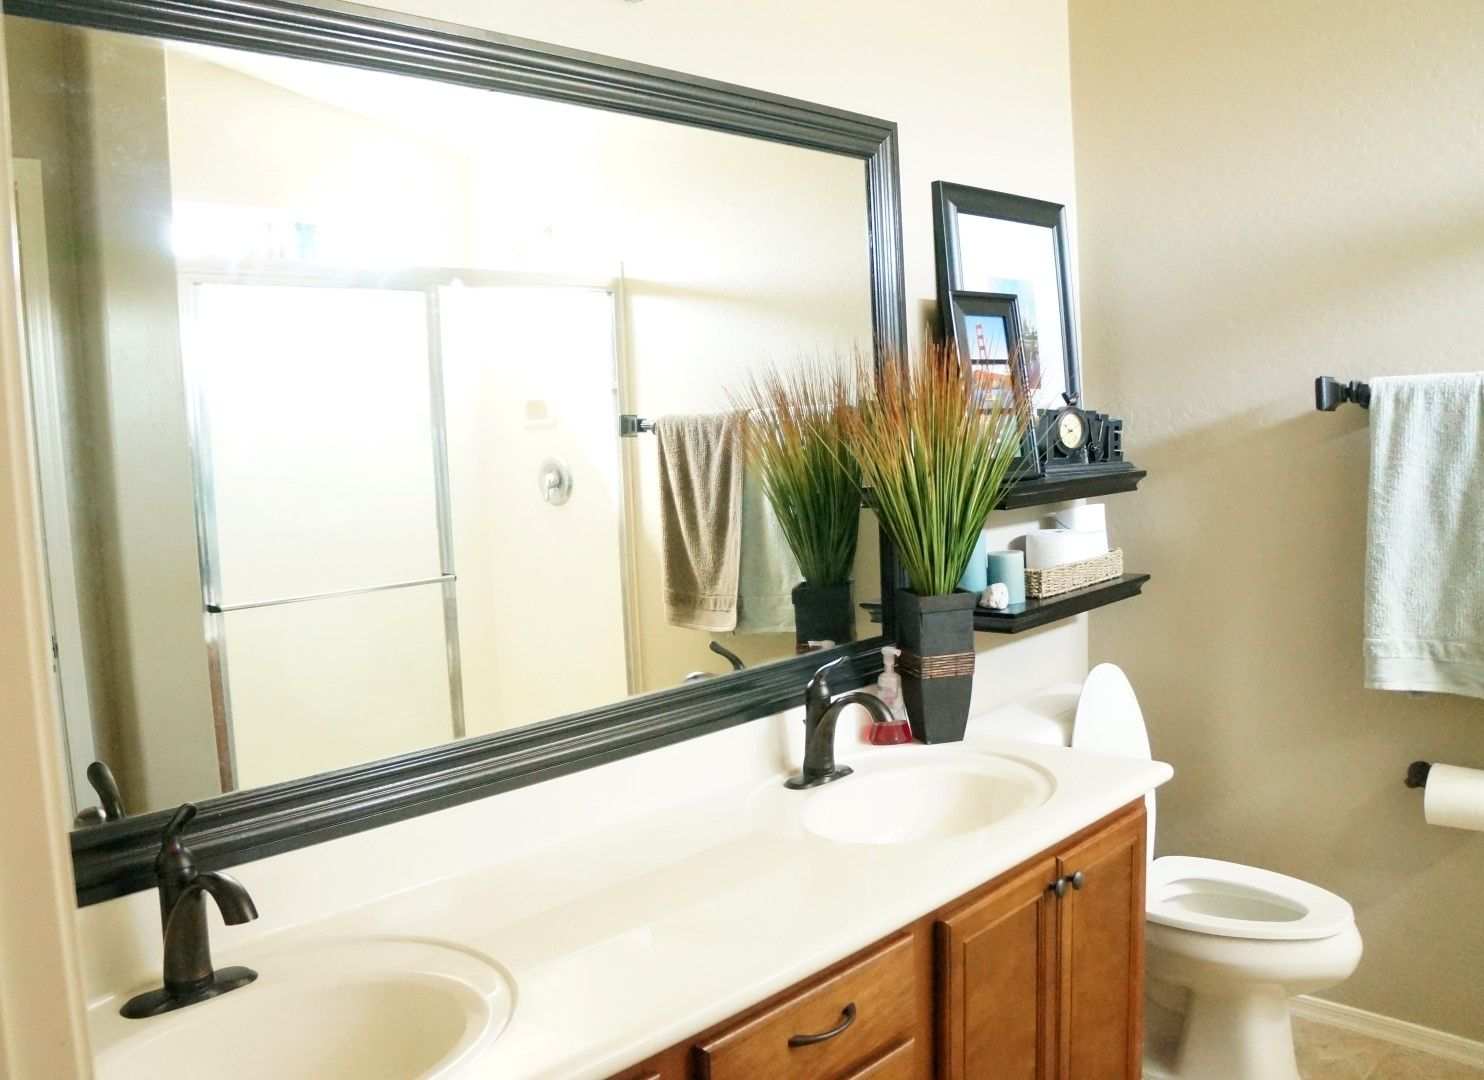 How to Frame a Mirror | Bathroom remodeling | Pinterest | Painting